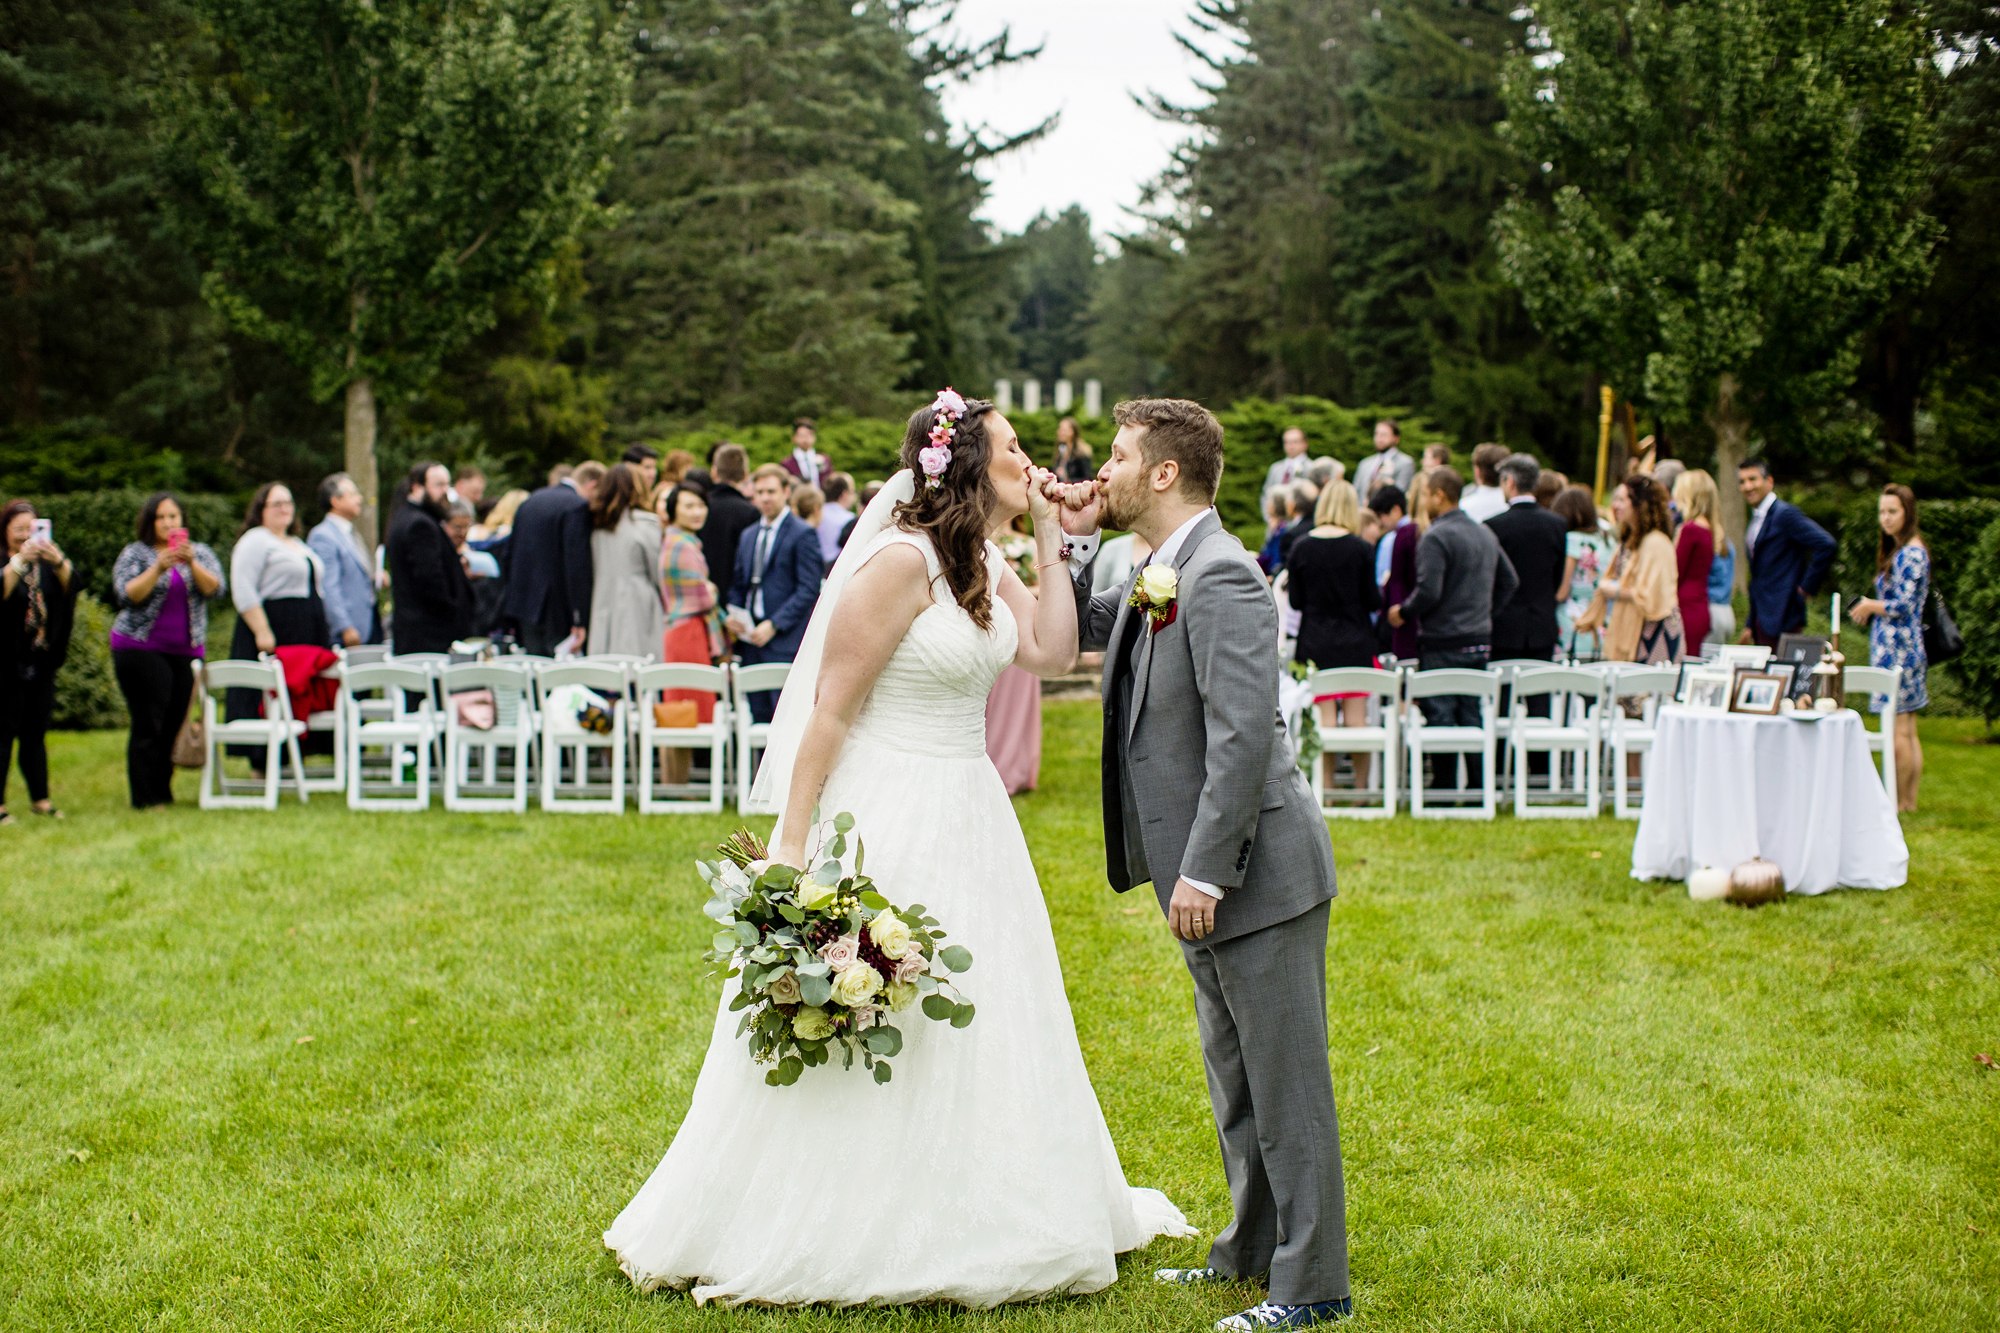 Seriously_Sabrina_Photography_Lisle_Illinois_Morton_Arboretum_Wedding_Day_Gowen77.jpg